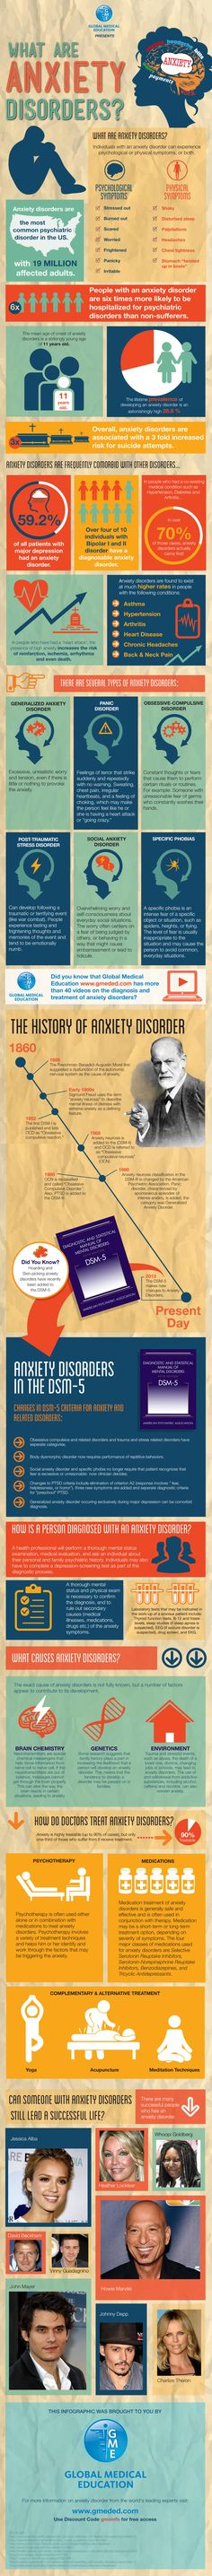 What are #anxiety disorders? #Psychology #infographic #health #mental #mentalhealth #stress #sleep #headache #panic #science #depression #bipolar #PTSD #history #DSM #DSM5 #brain #psychotherapy #medication #meditation